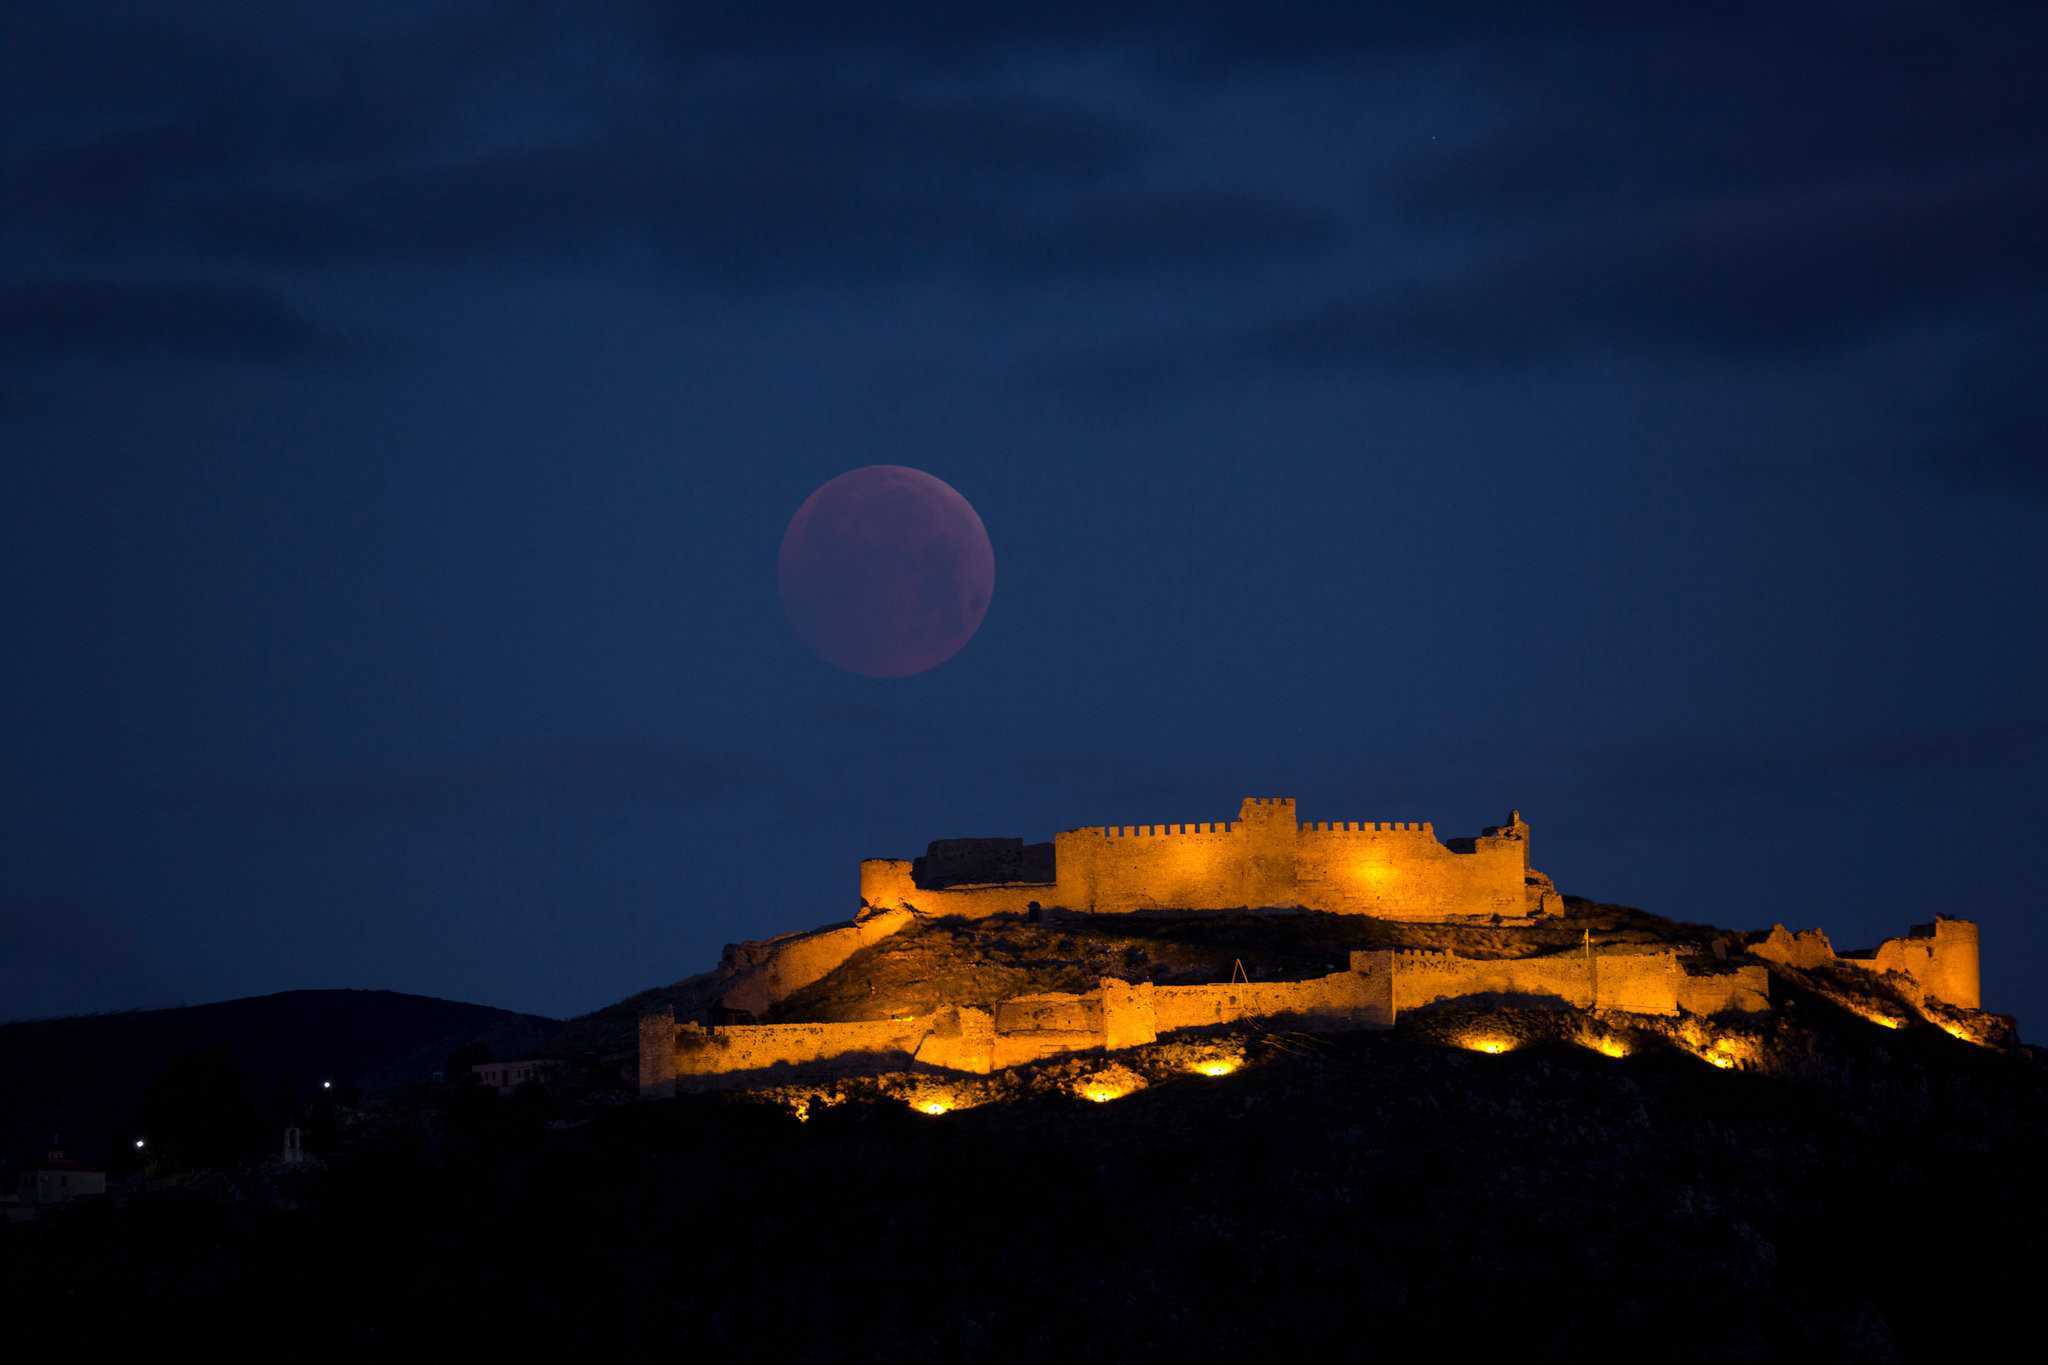 Blood Moon 2019: What Does it Mean?